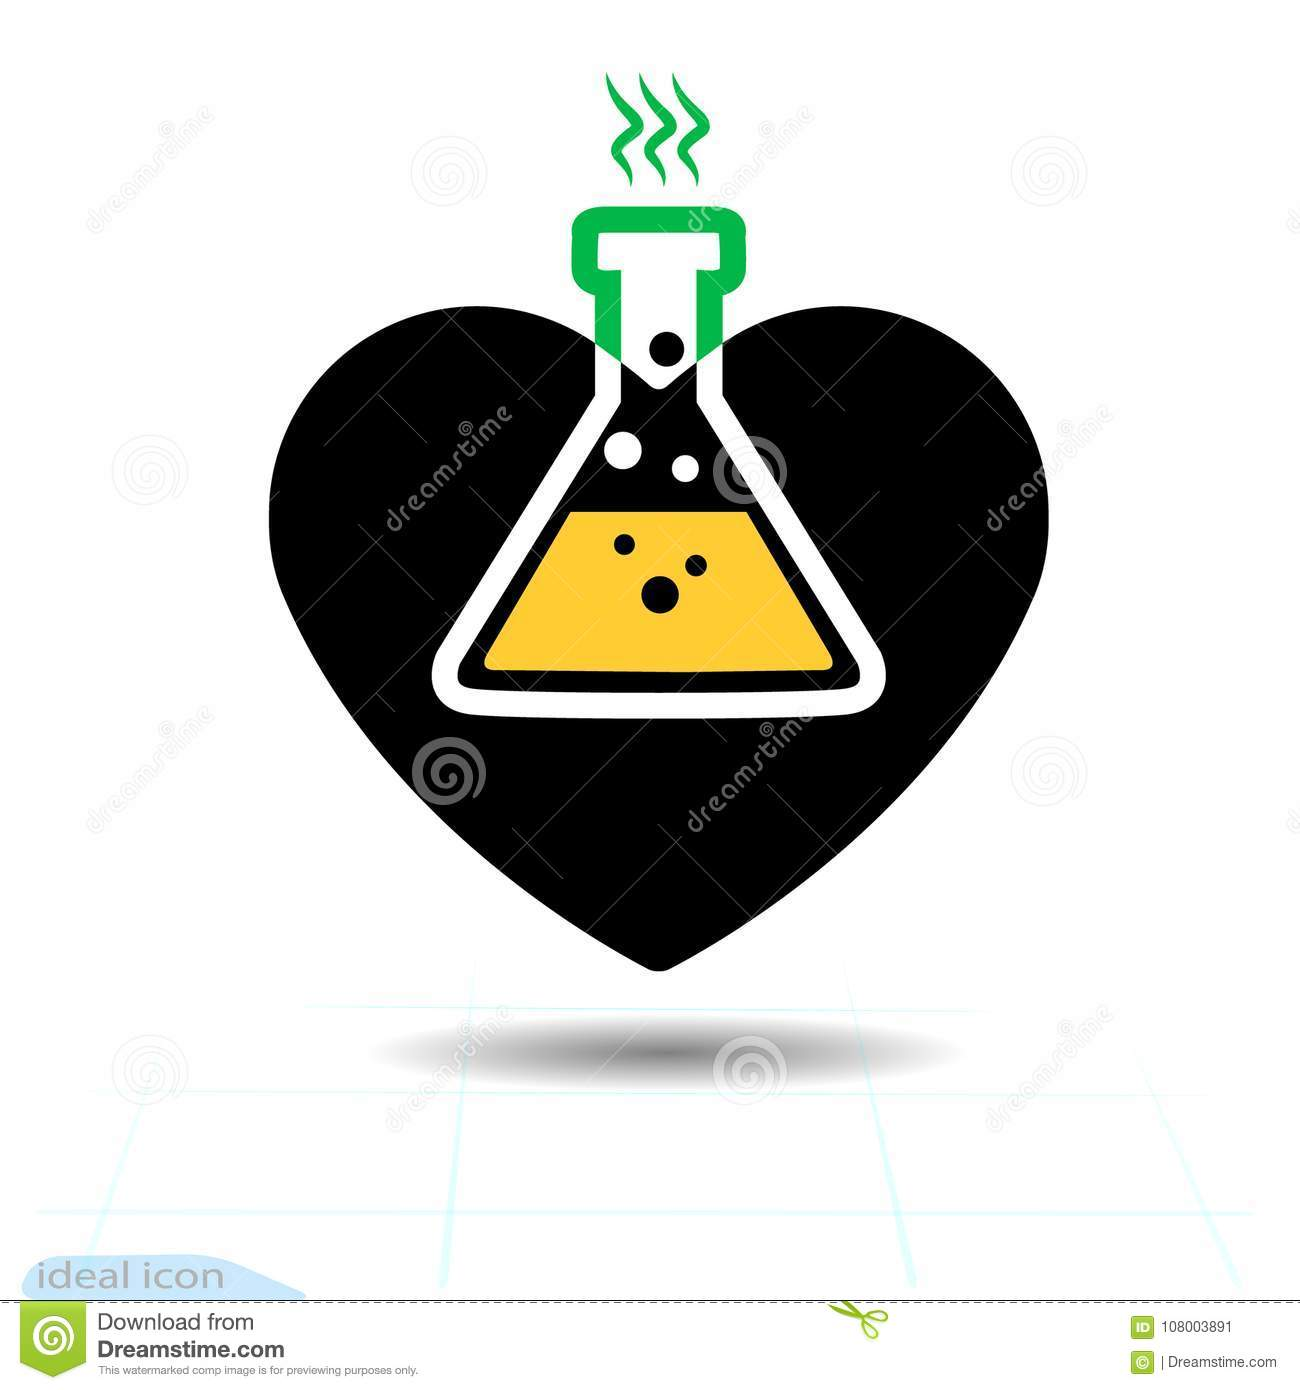 Heart Icon A Symbol Of Love Valentine S Day With The Sign Of The